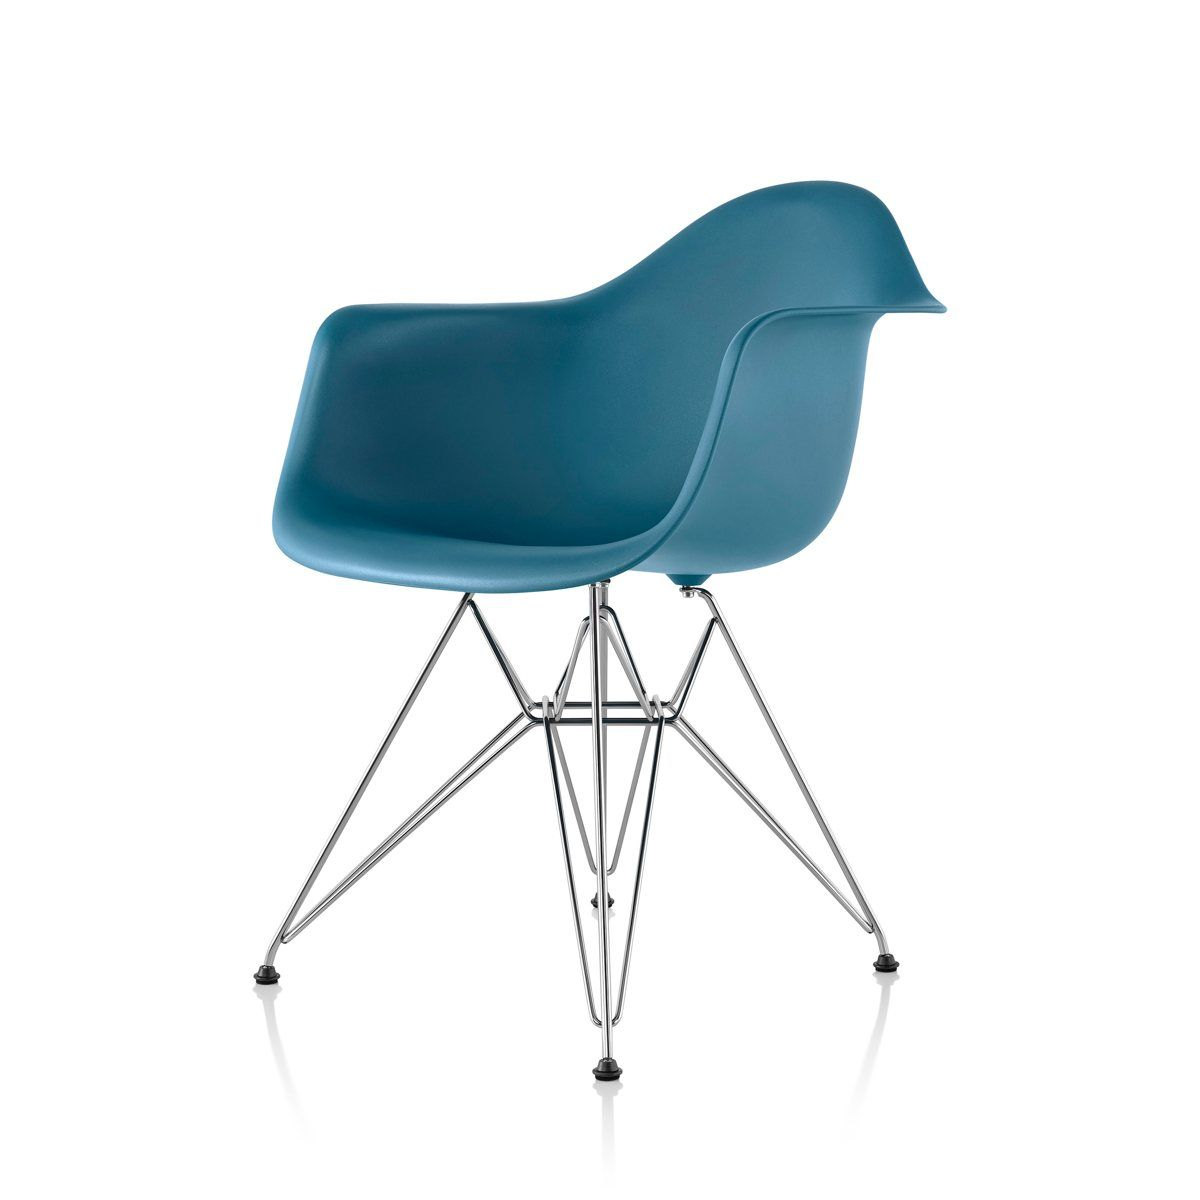 Eames Molded Plastic Armchair Wire Base by Charles & Ray